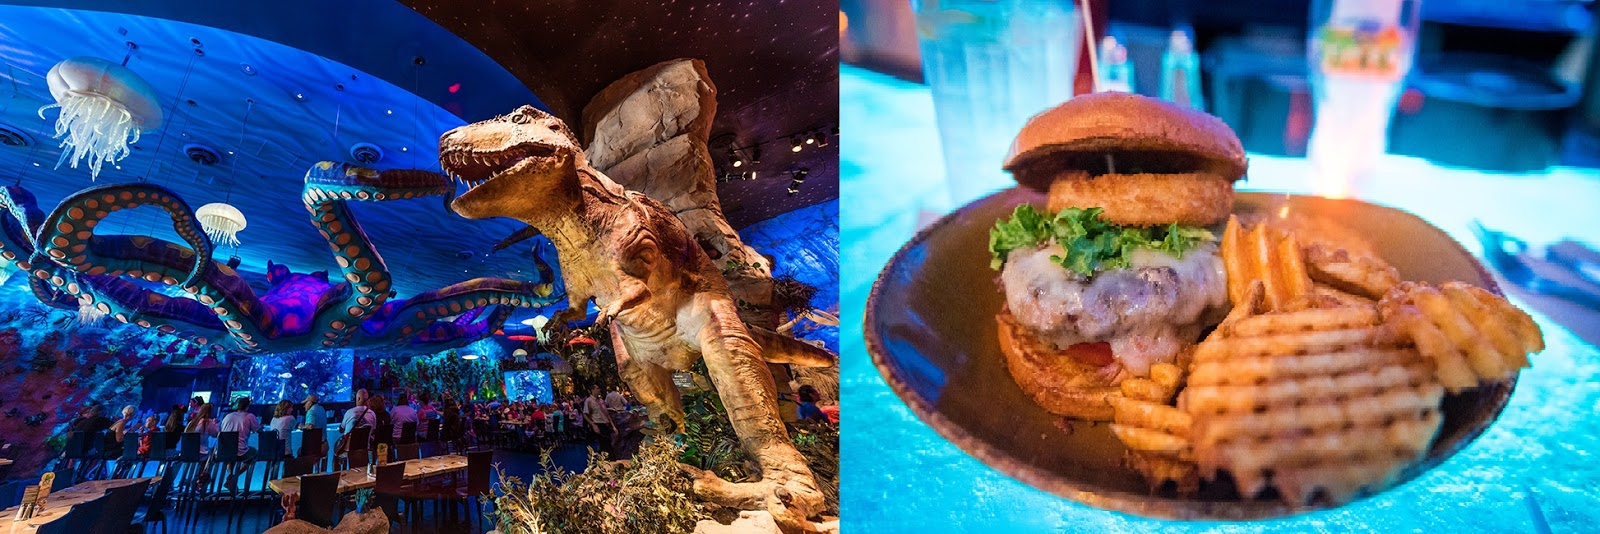 Top 10 table service restaurants at walt disney world for Disney dining reservations t rex